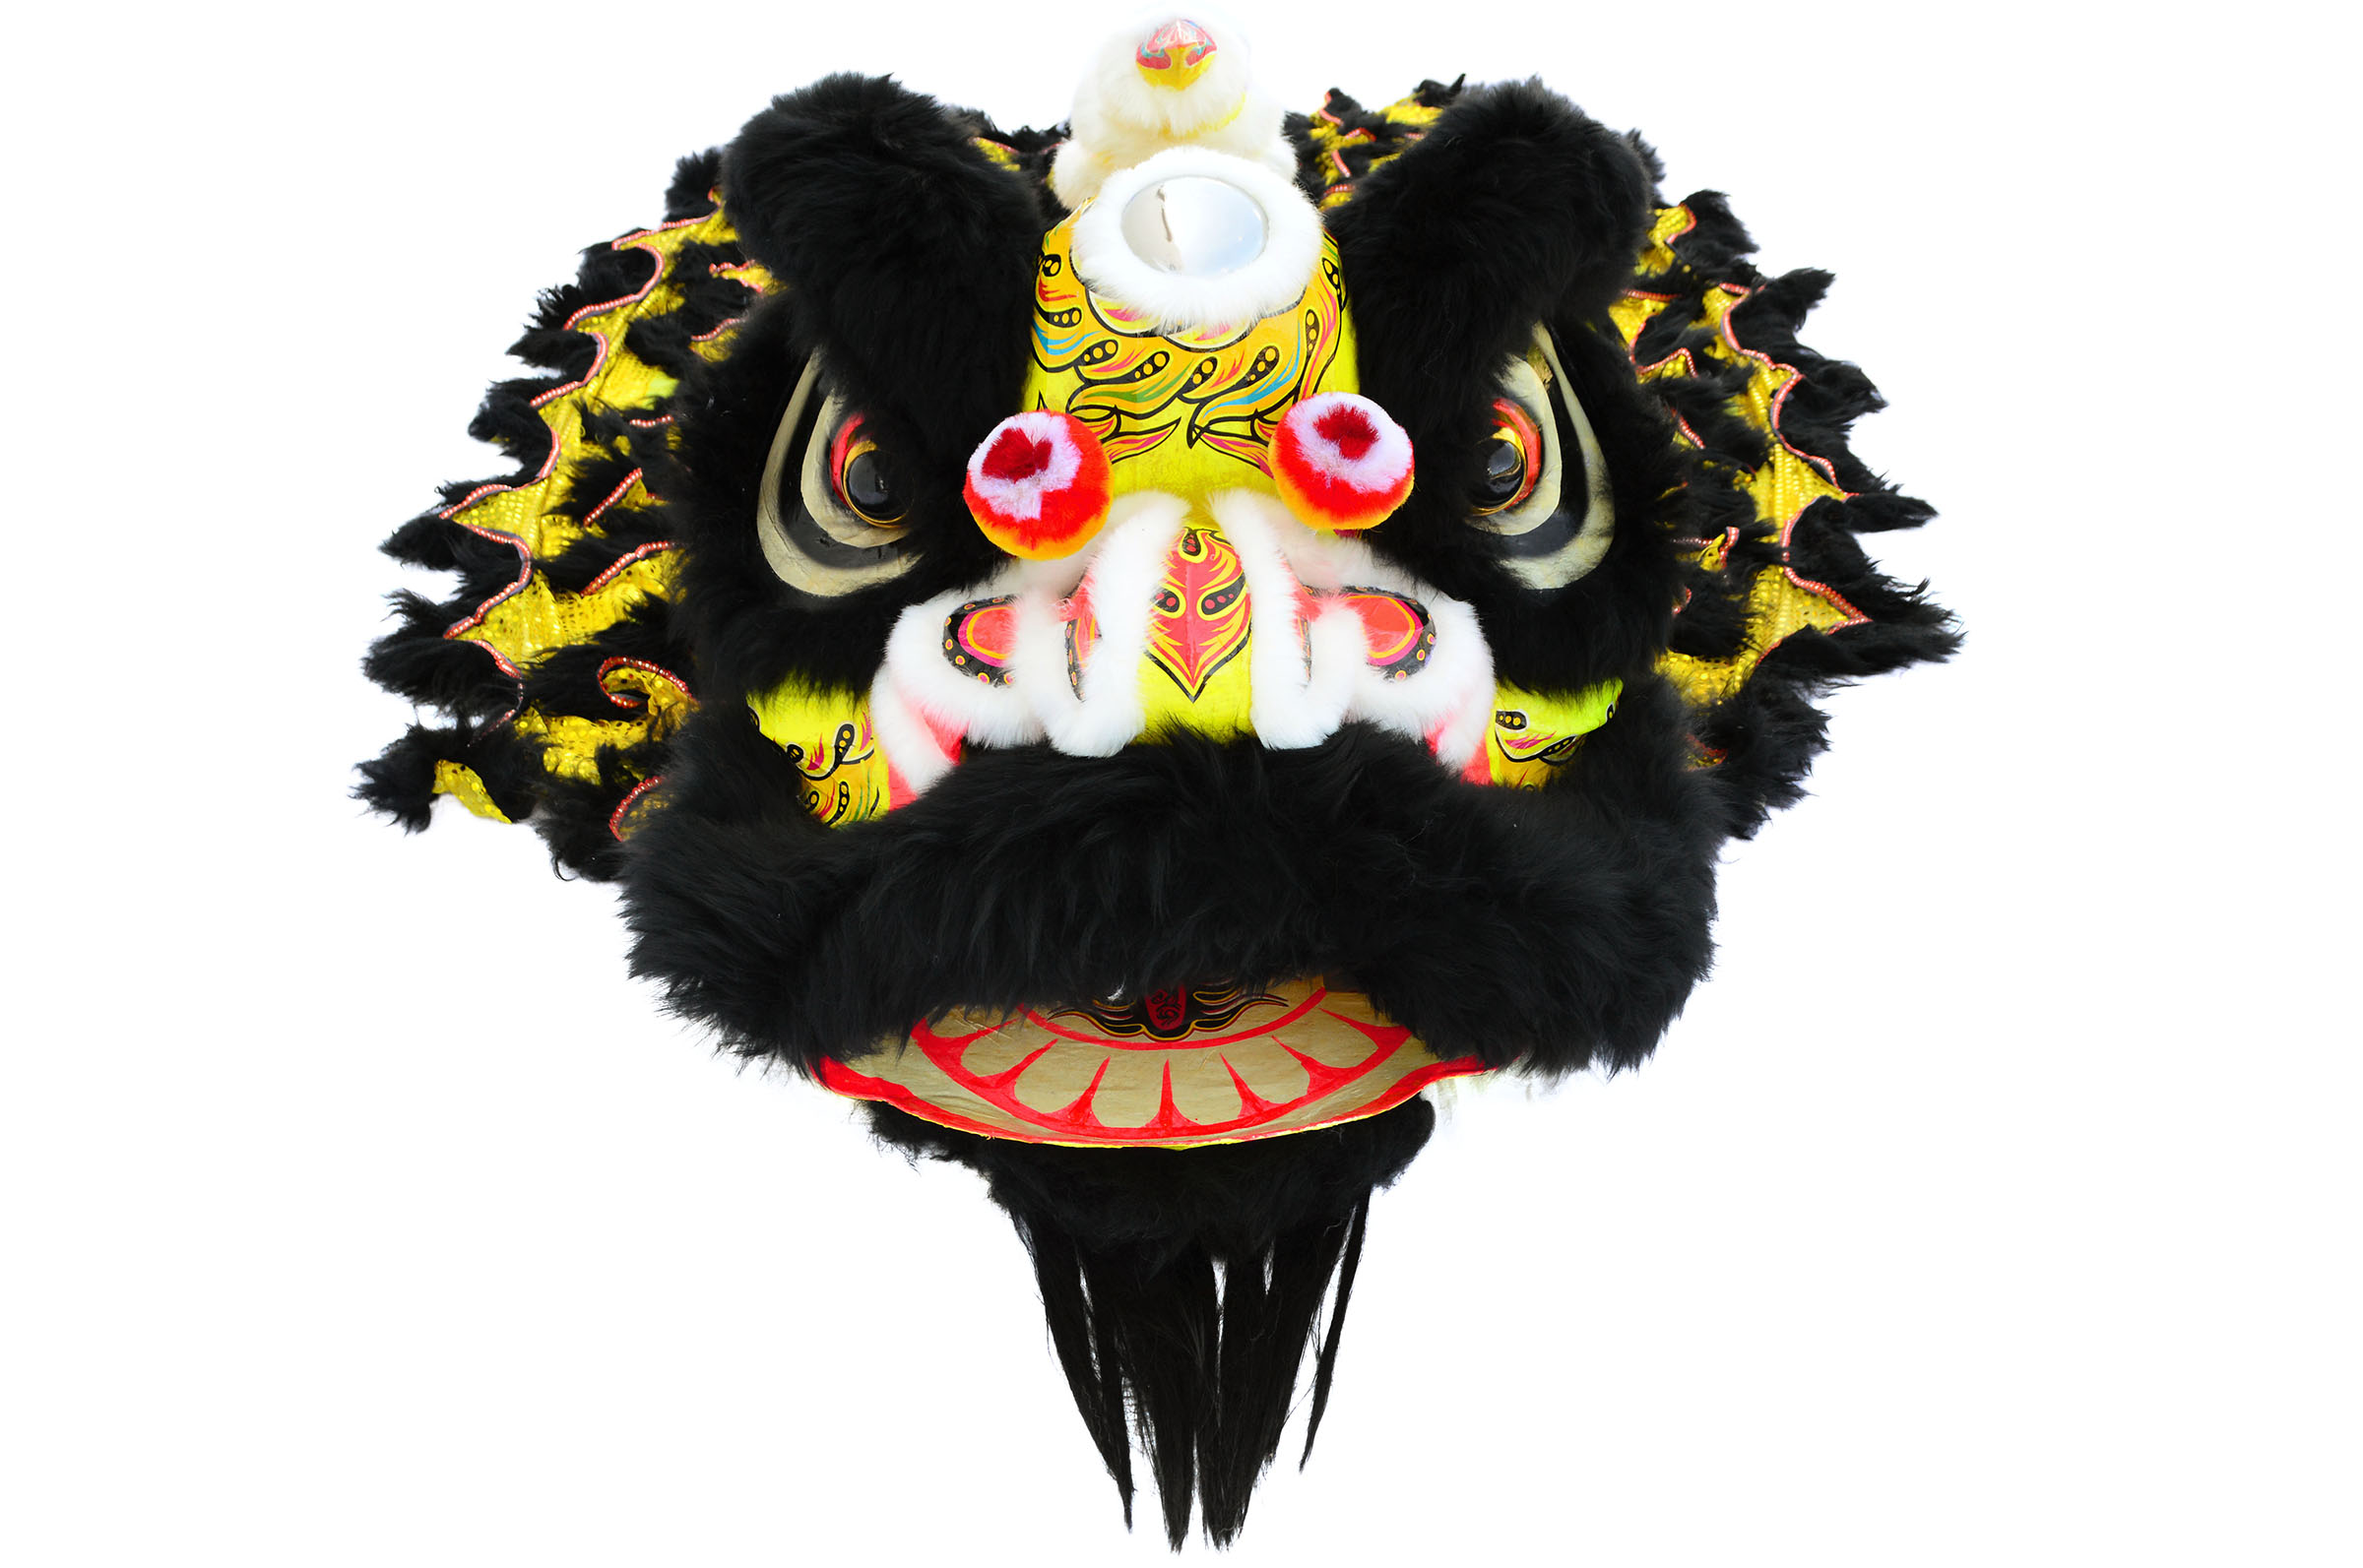 Southern lion dance costume black gold